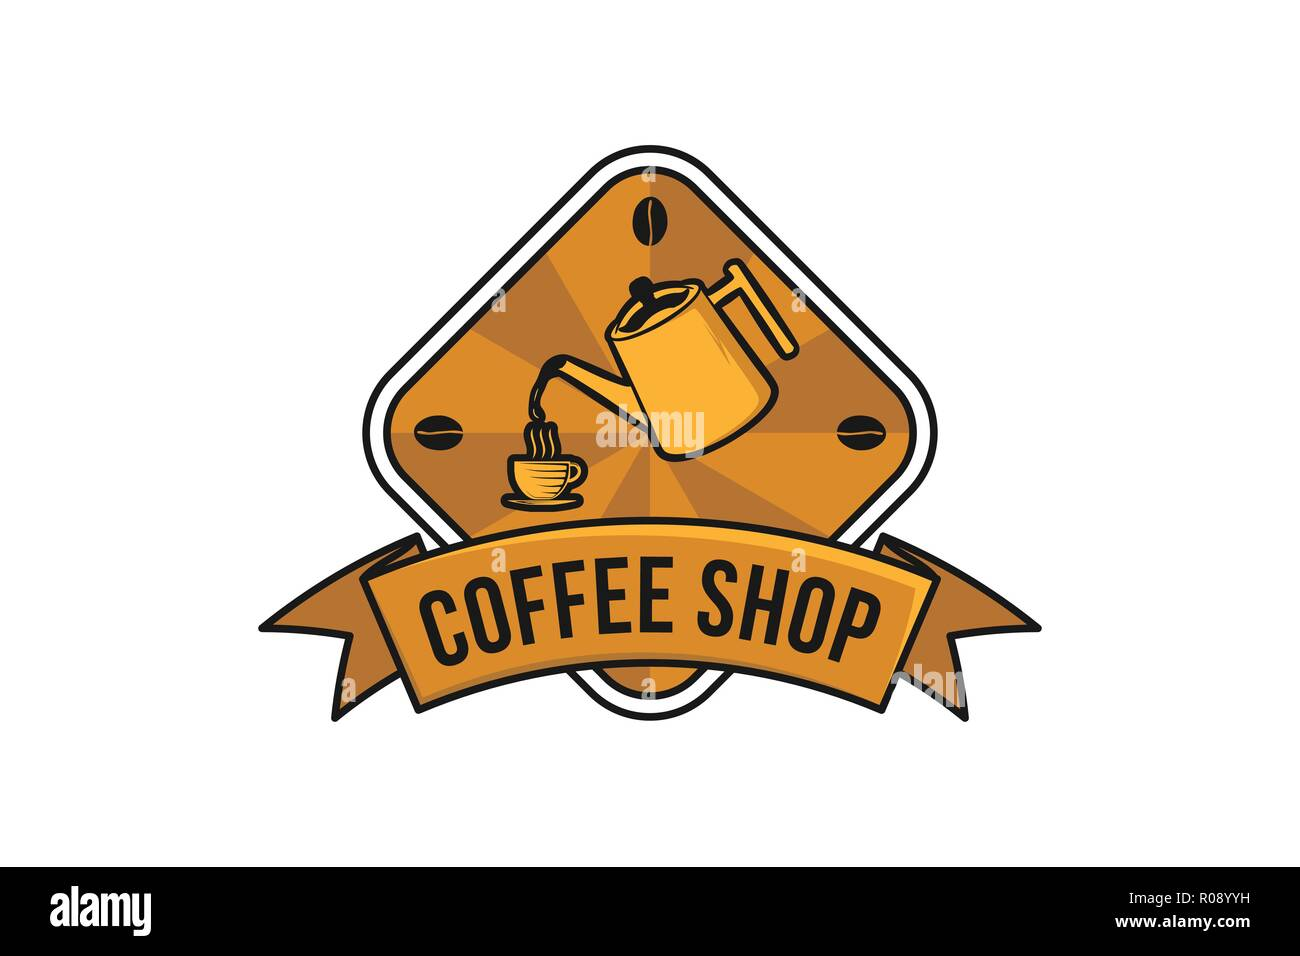 Pouring Coffee Vintage Coffee Shop Logo Designs Inspiration Isolated On White Background Stock Vector Image Art Alamy